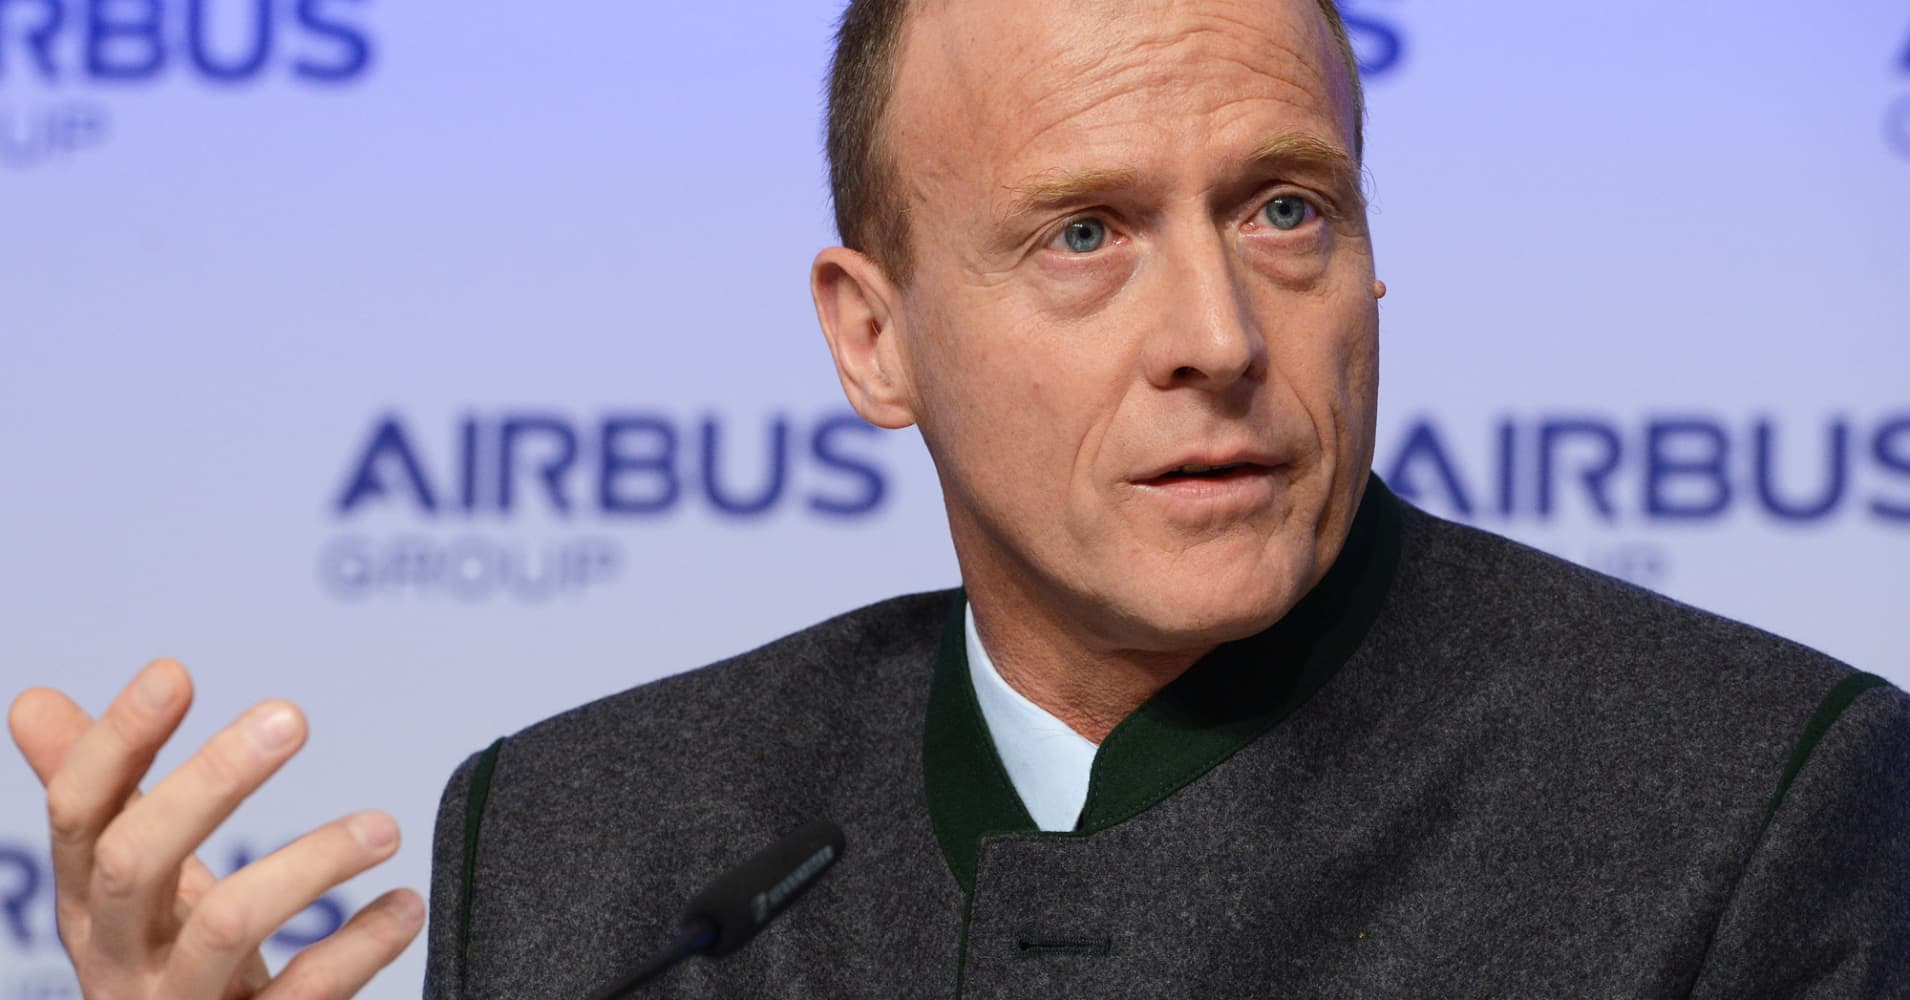 Airbus warns UK government has 'no clue' on Brexit as warring lawmakers meet